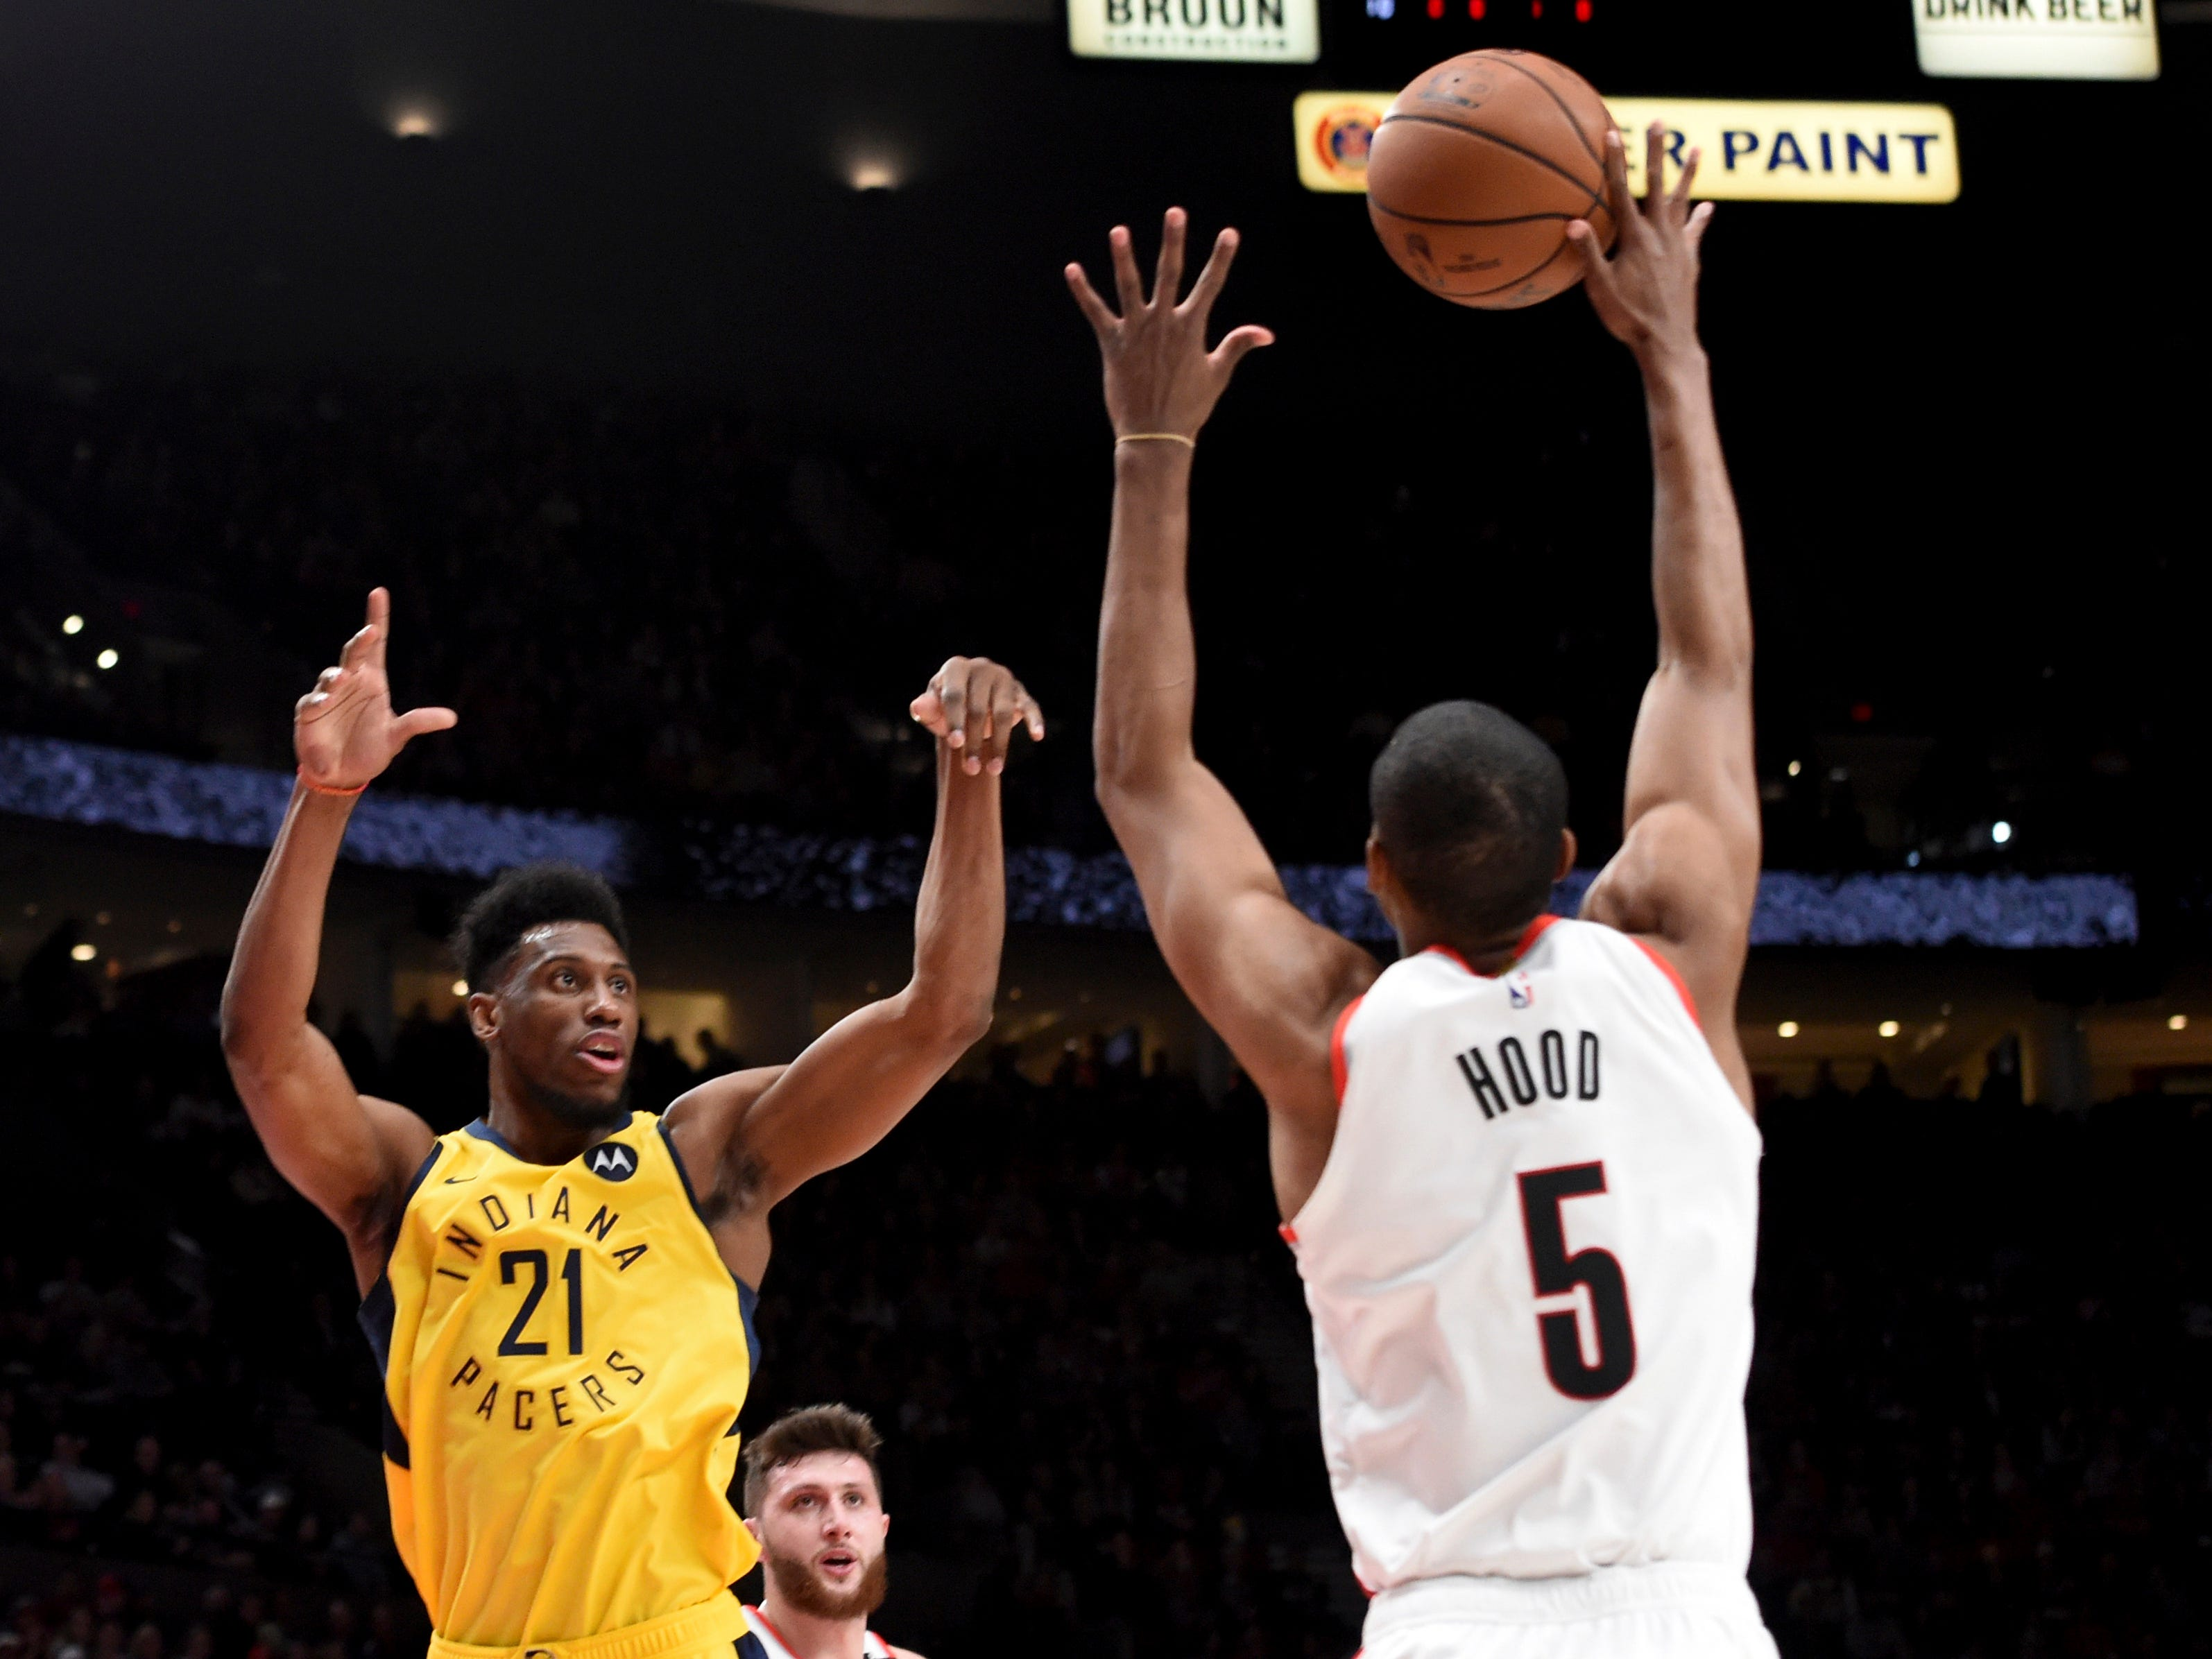 Indiana Pacers forward Thaddeus Young, left, tries to pass the ball over Portland Trail Blazers guard Rodney Hood, right, during the first half of an NBA basketball game in Portland, Ore., Monday, March 18, 2019.